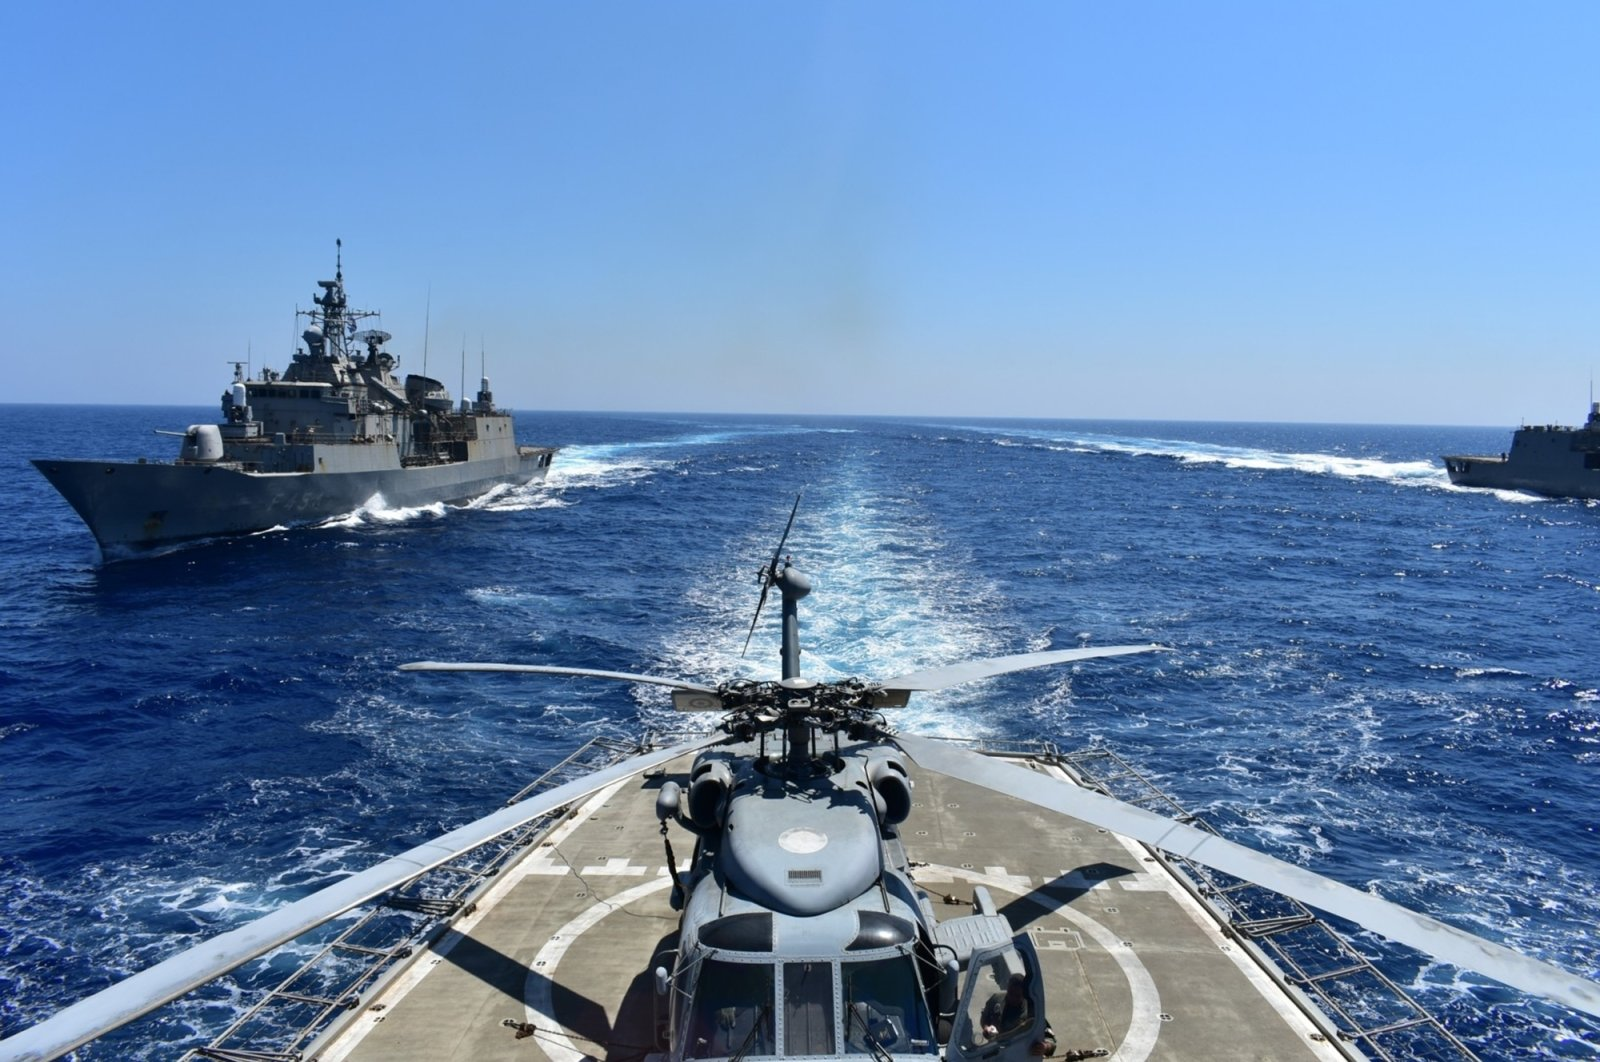 Greek warships take part in a military exercise in the Eastern Mediterranean, Aug. 25, 2020. (AP Photo)